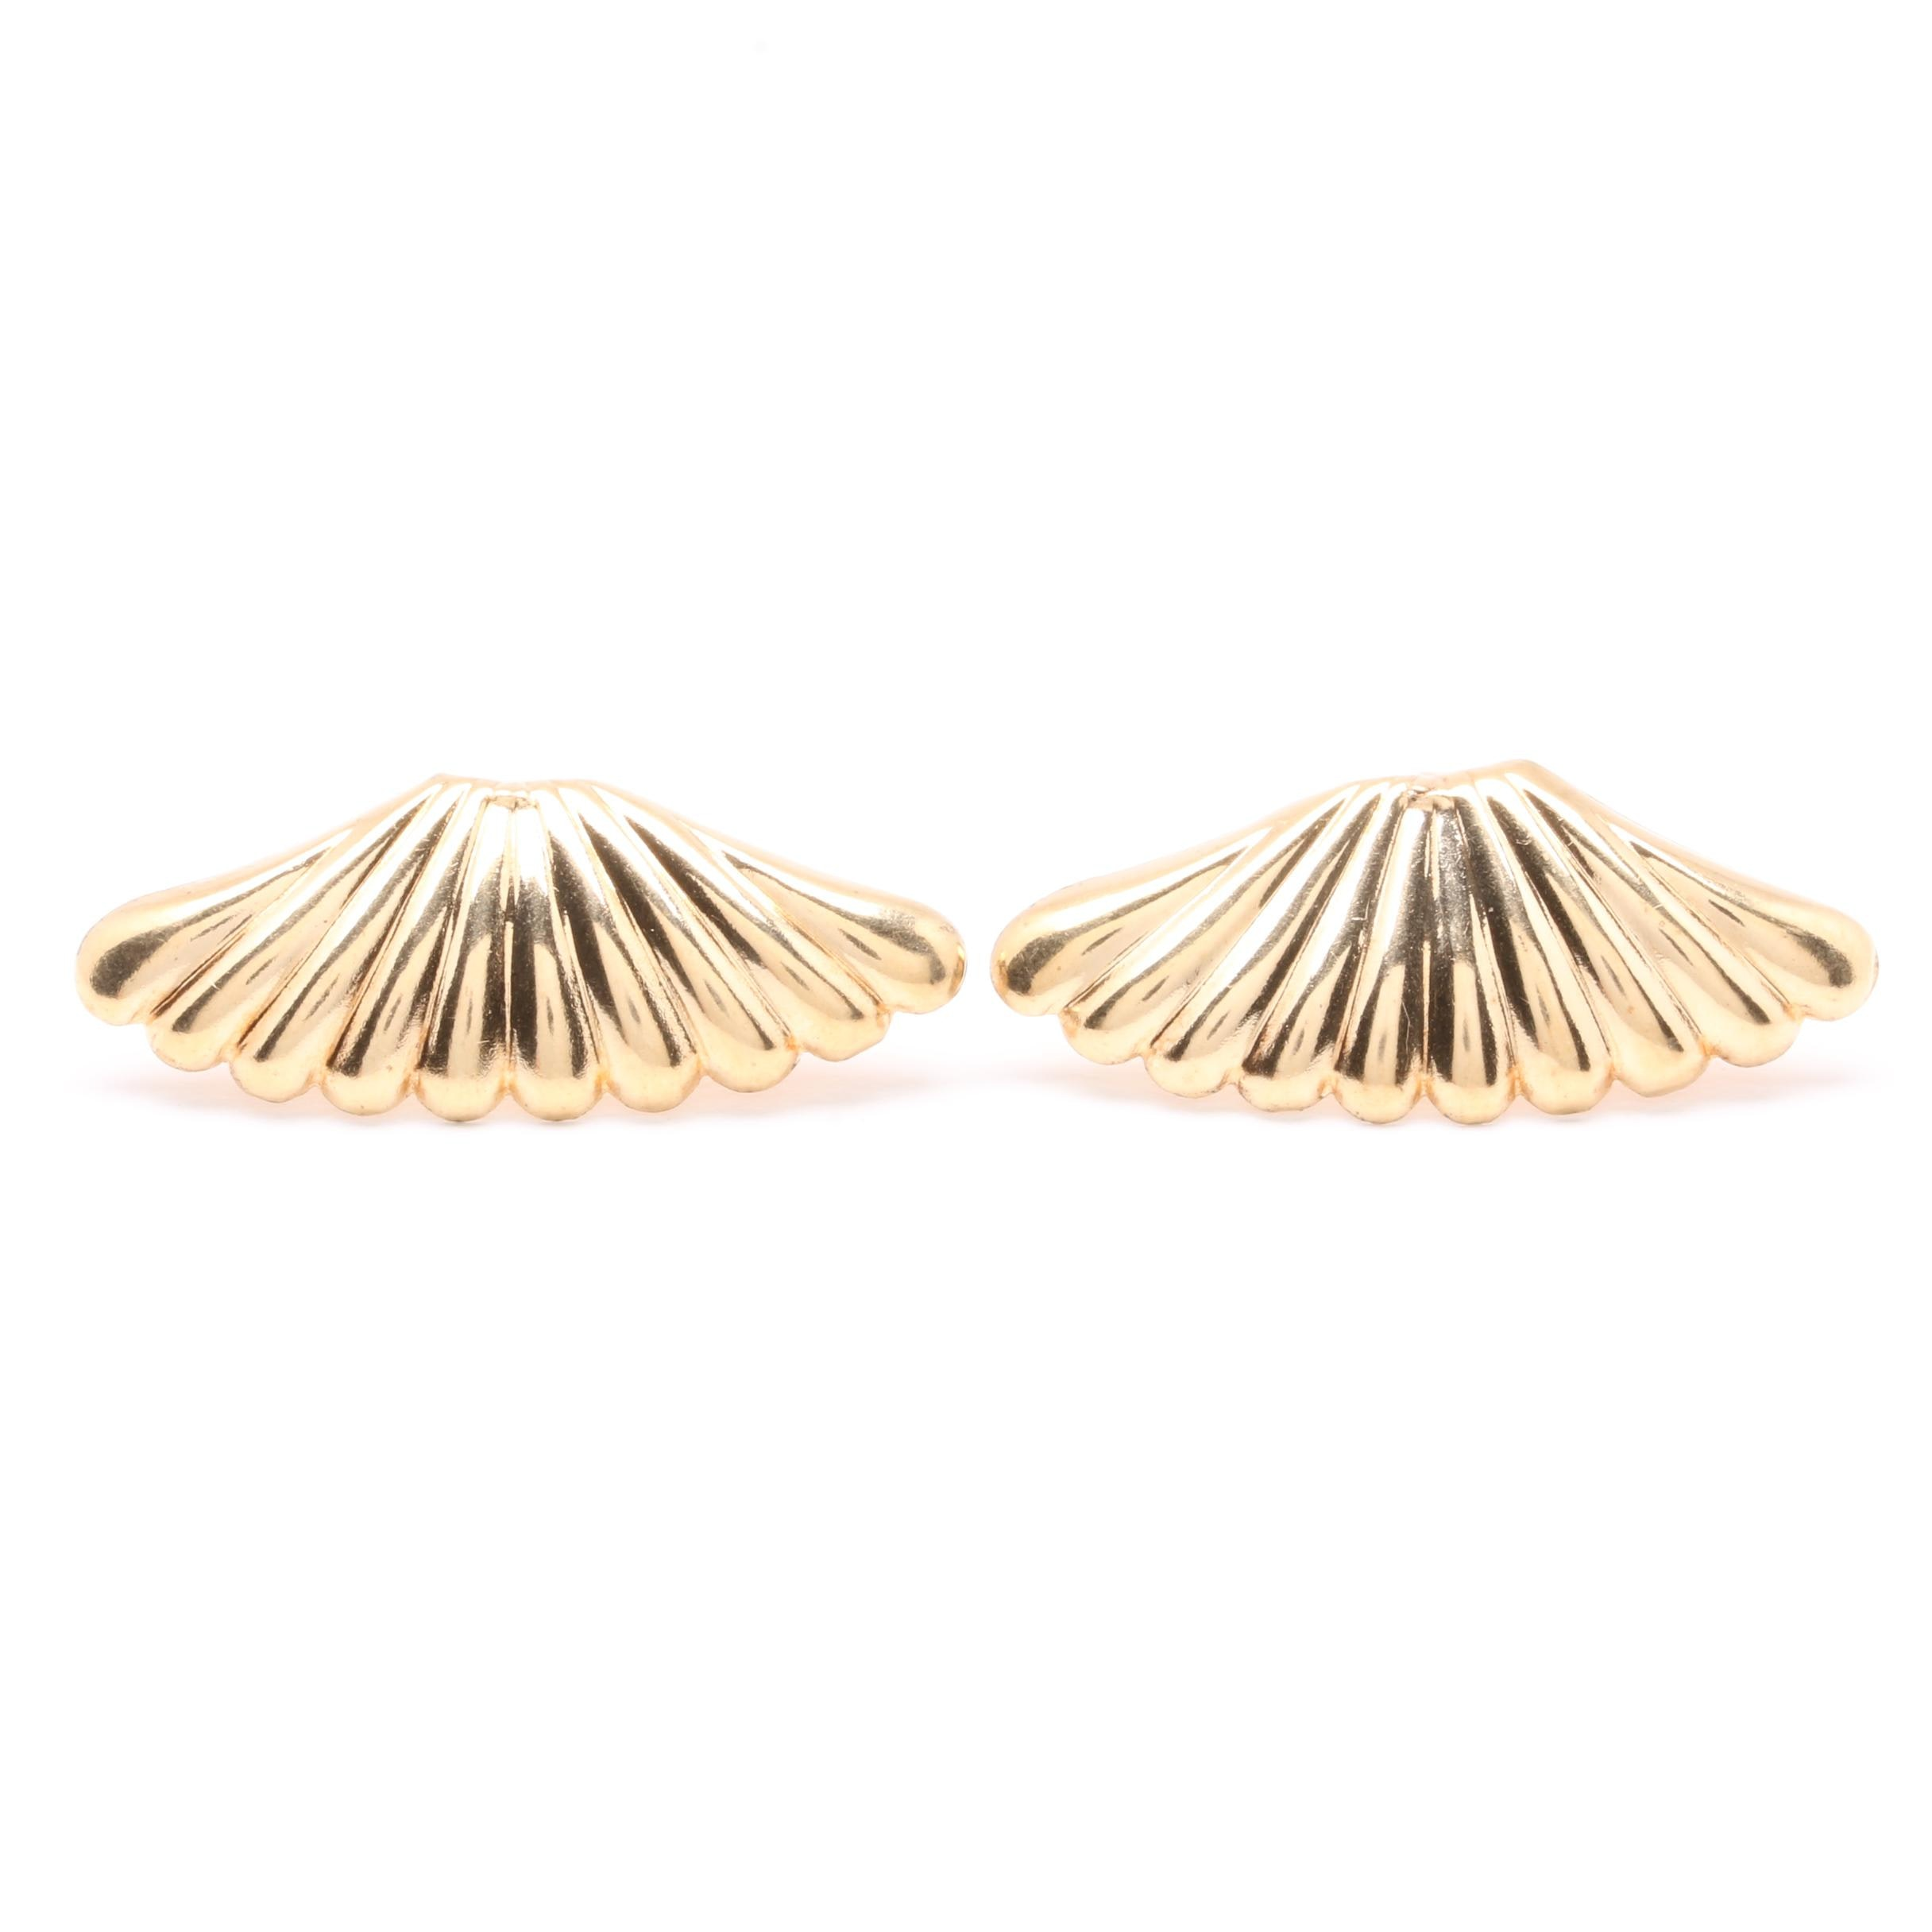 14K Yellow Gold Scalloped Post Earrings